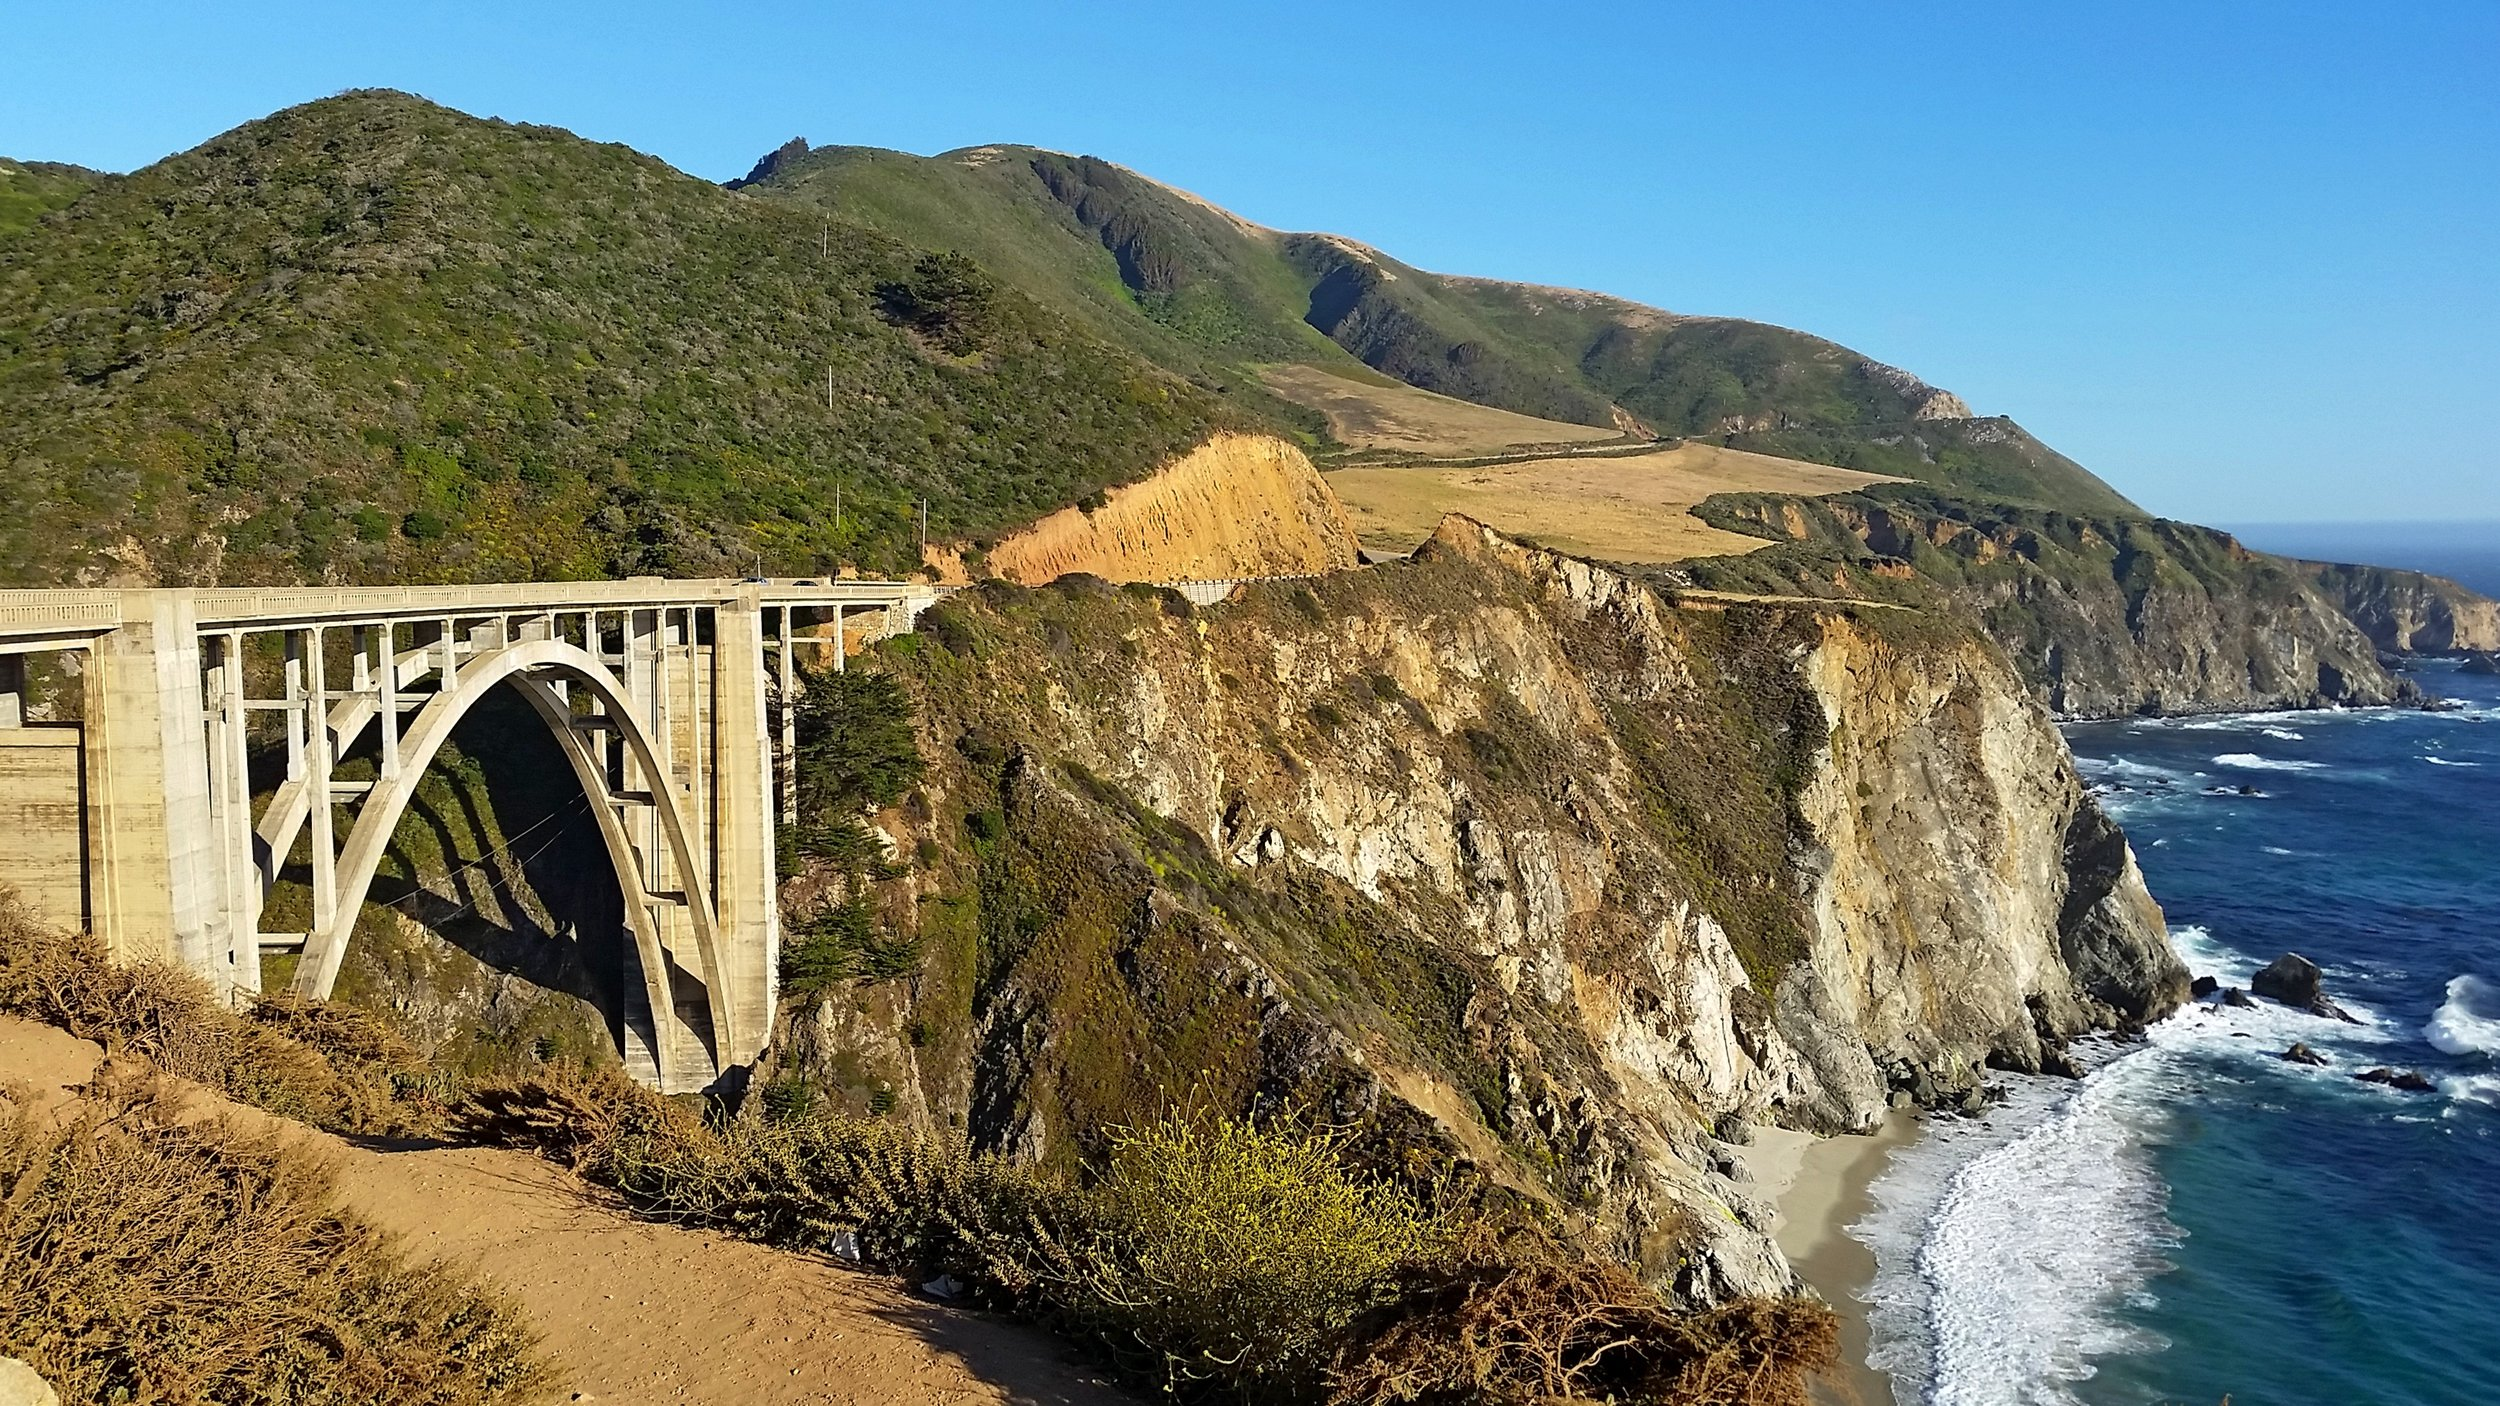 Passing the Bixby Bridge once again. I think I got a better shot this time.